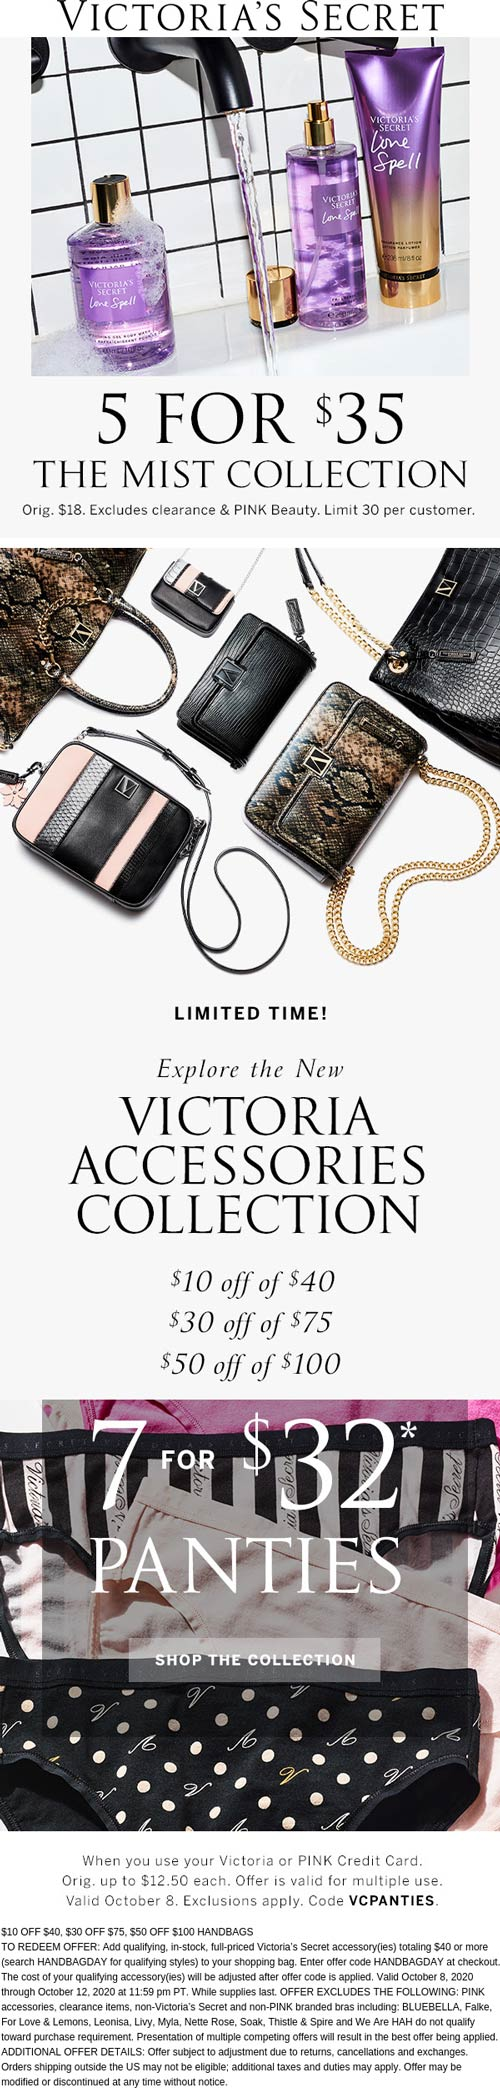 Victorias Secret stores Coupon  5 for $35 on mists & $10-$50 off $40+ on handbags and accessories at Victorias Secret via promo code HANDBAGDAY #victoriassecret